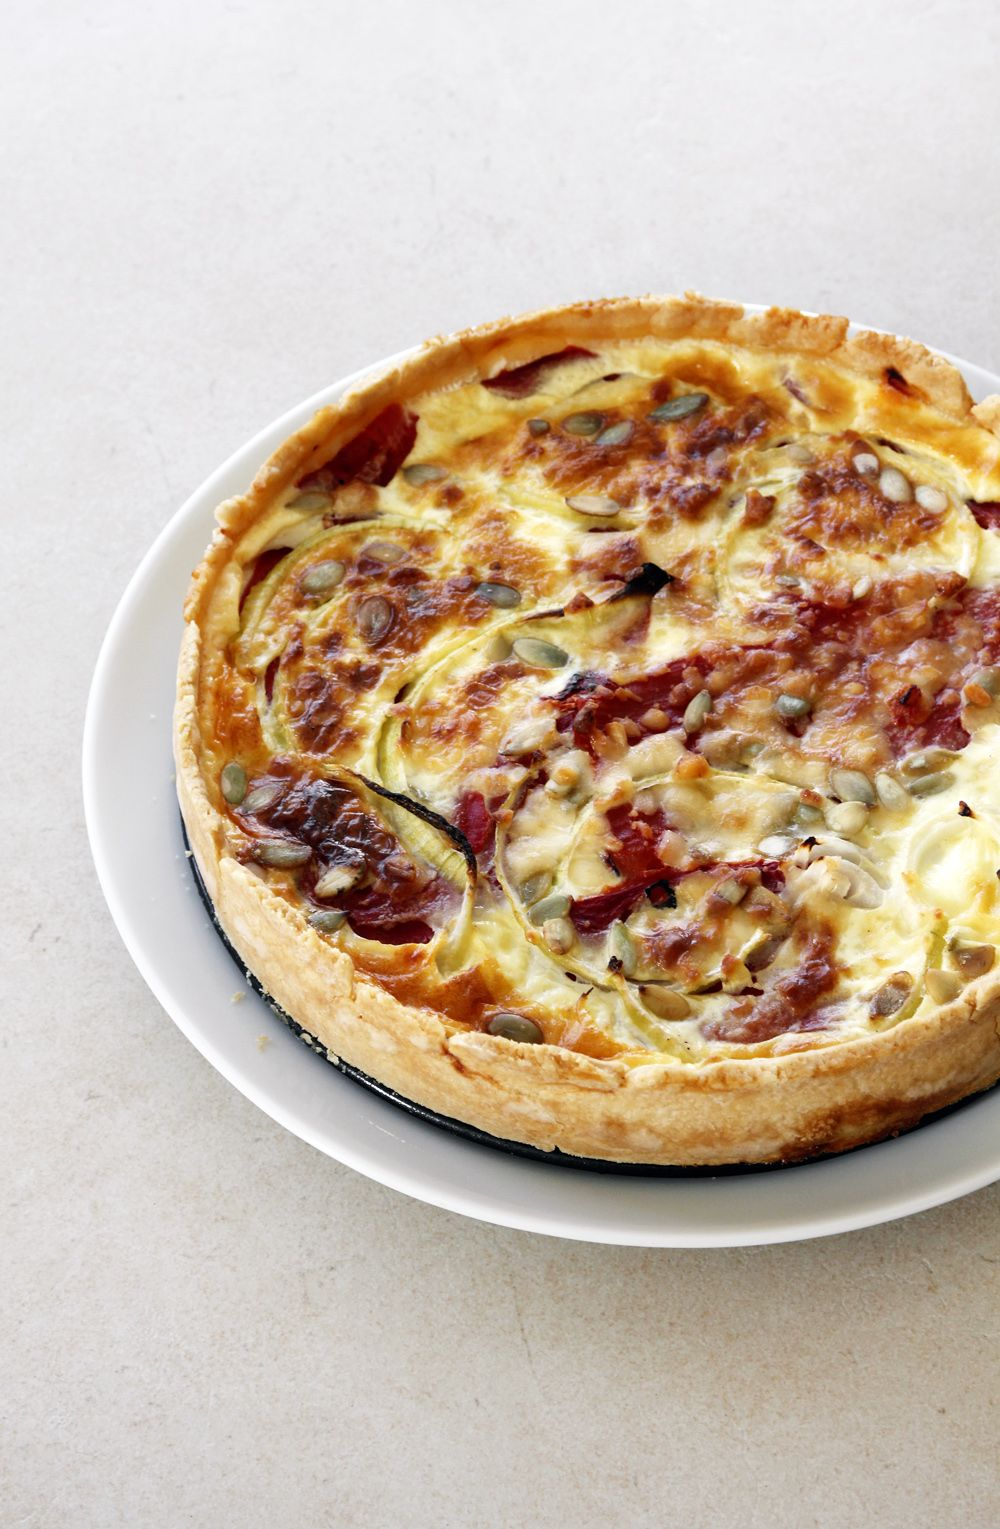 Goat Cheese Quiche with Roasted Bell Peppers